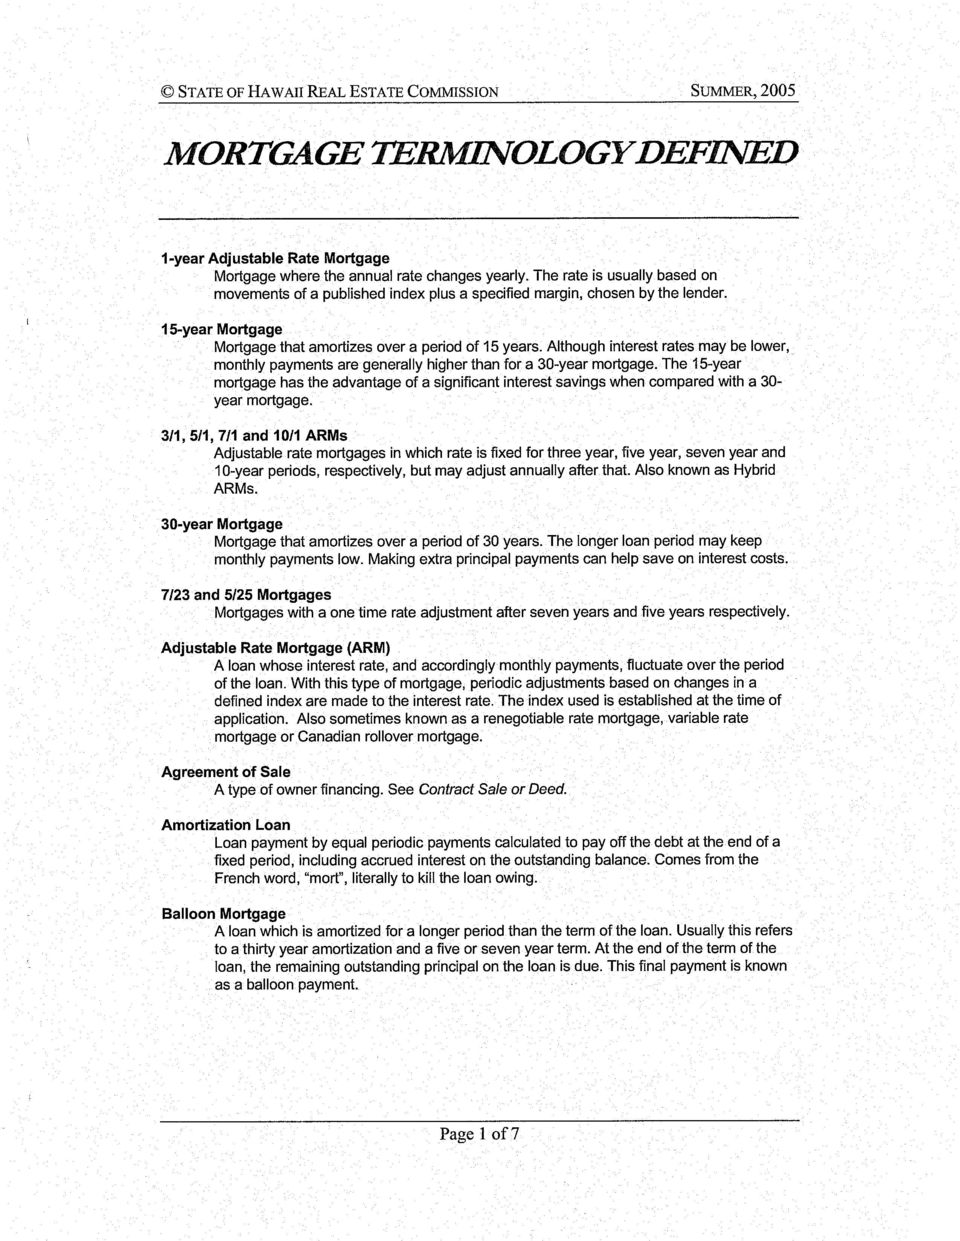 7123 and 5125 mortgages mortgages with a one time rate adjustment